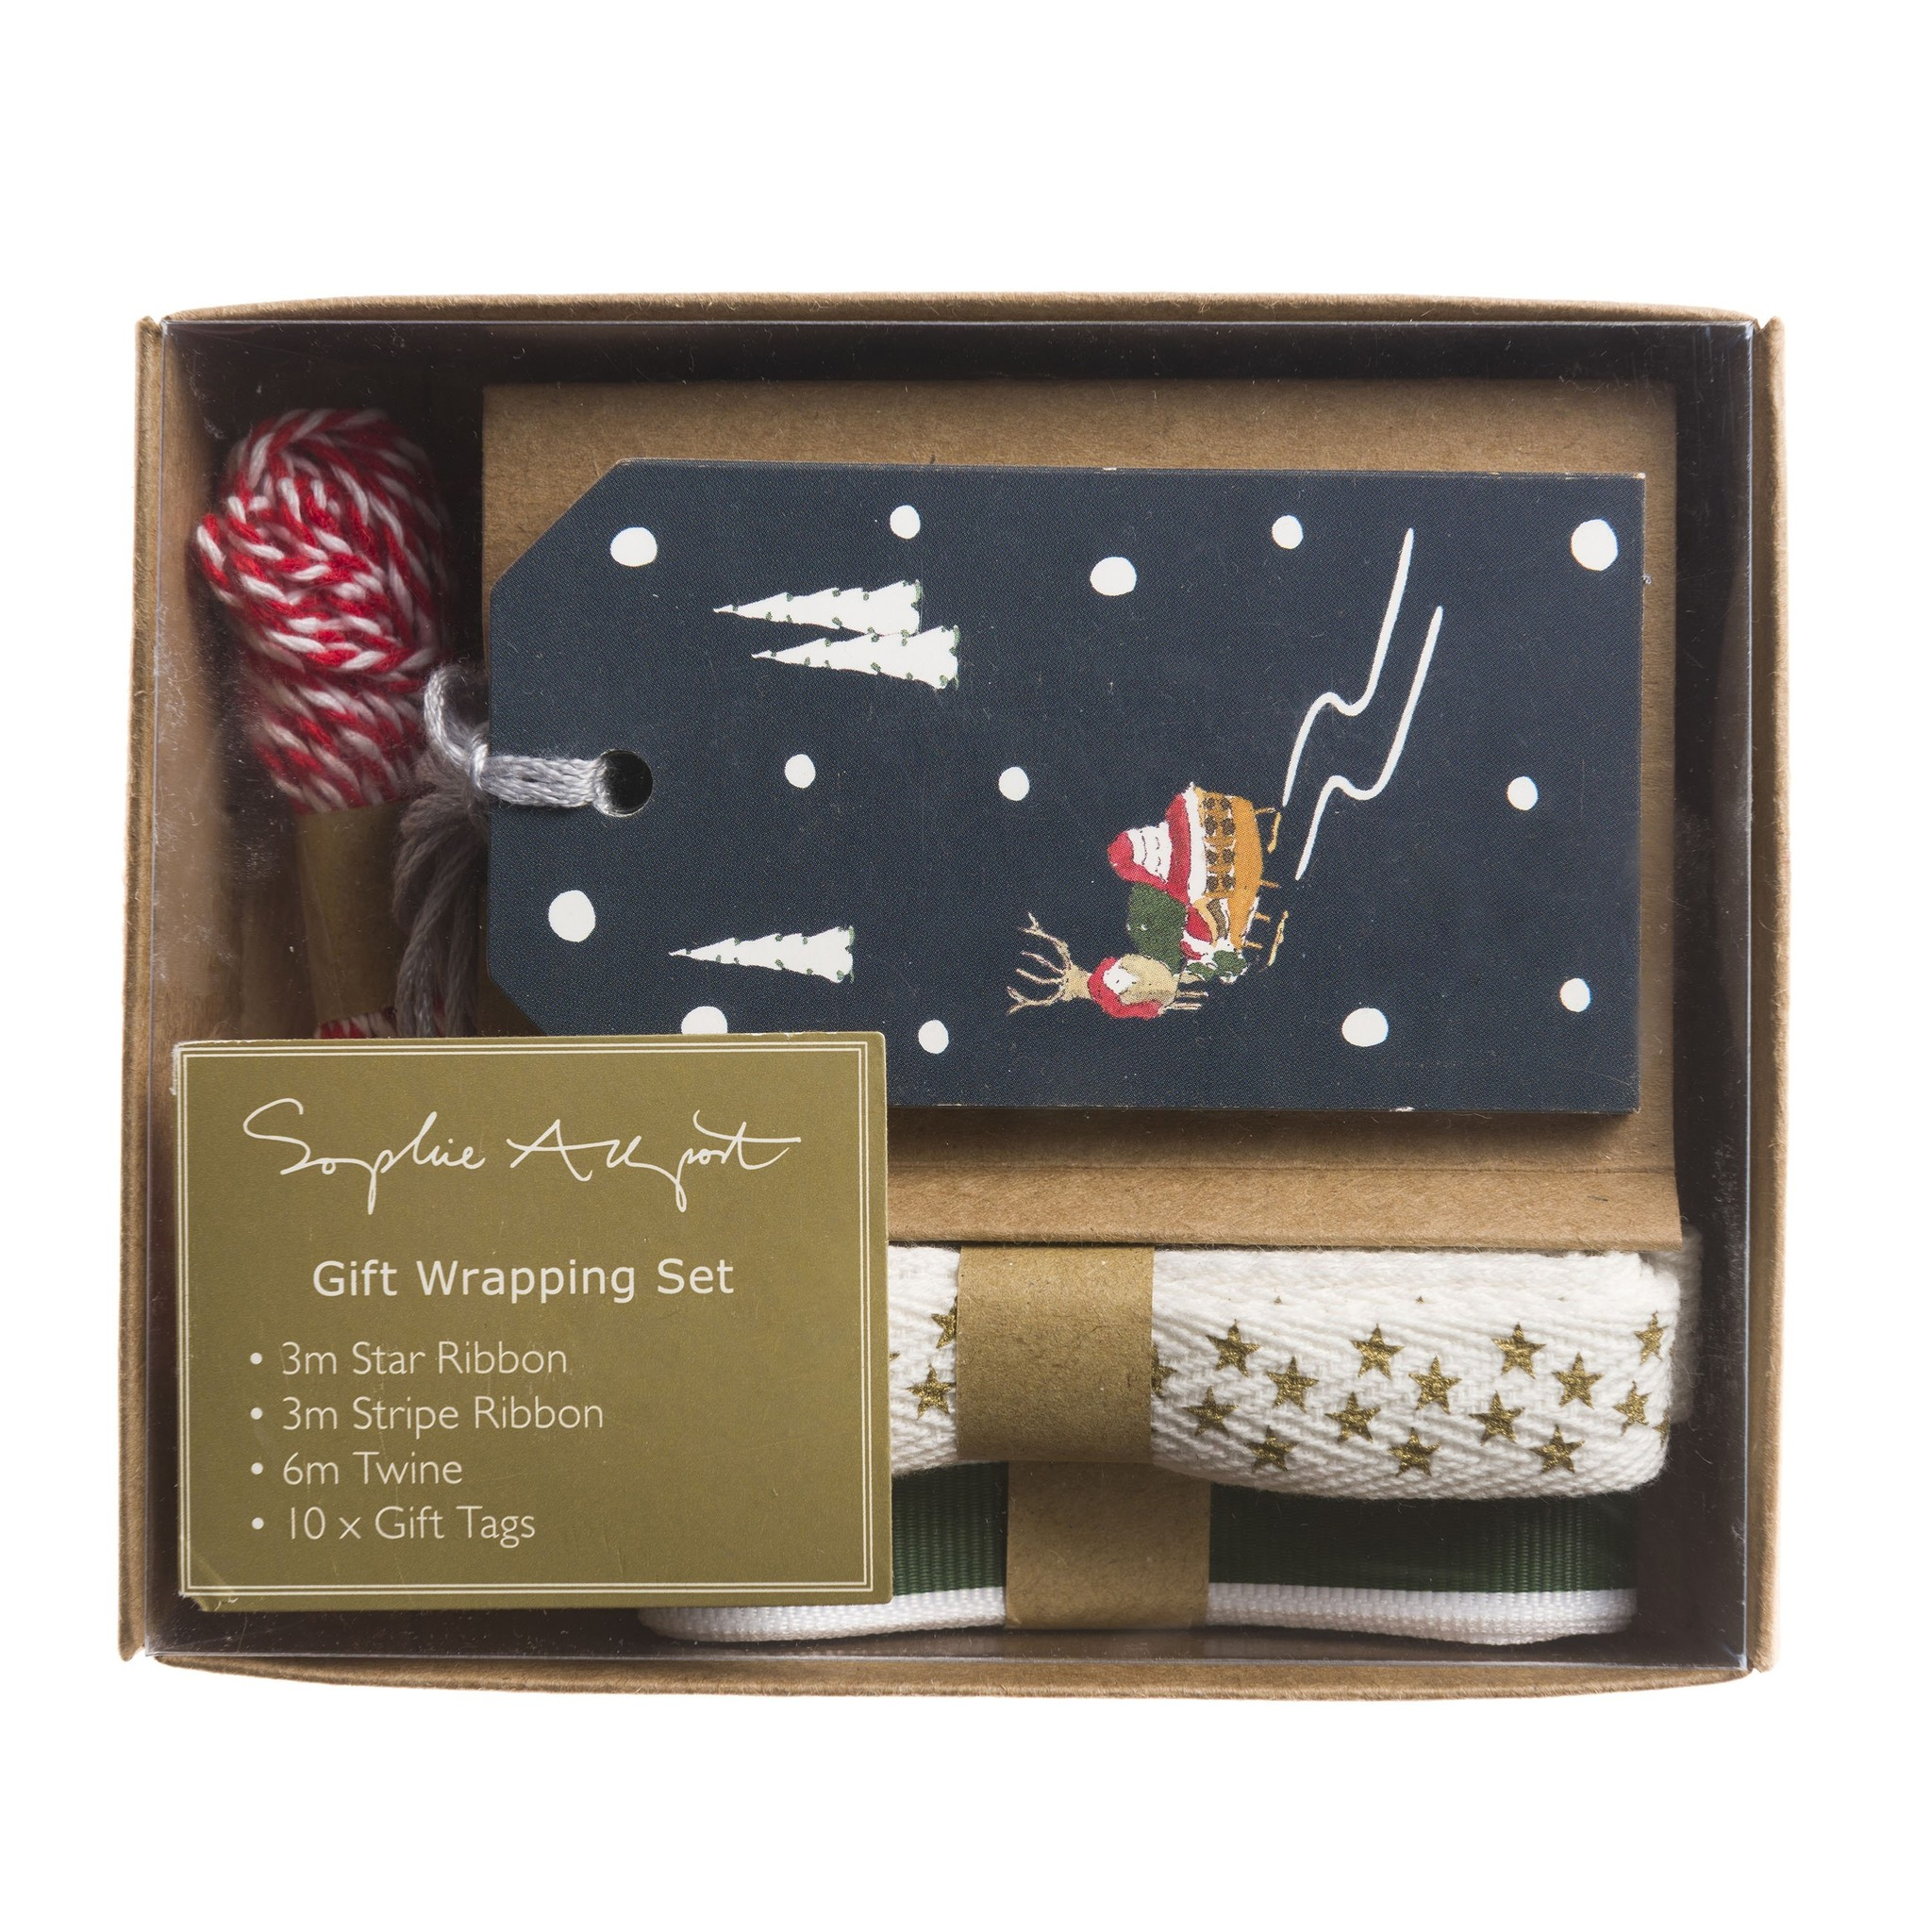 Sophie Allport Ribbon and Wrapping Set Home for Christmas